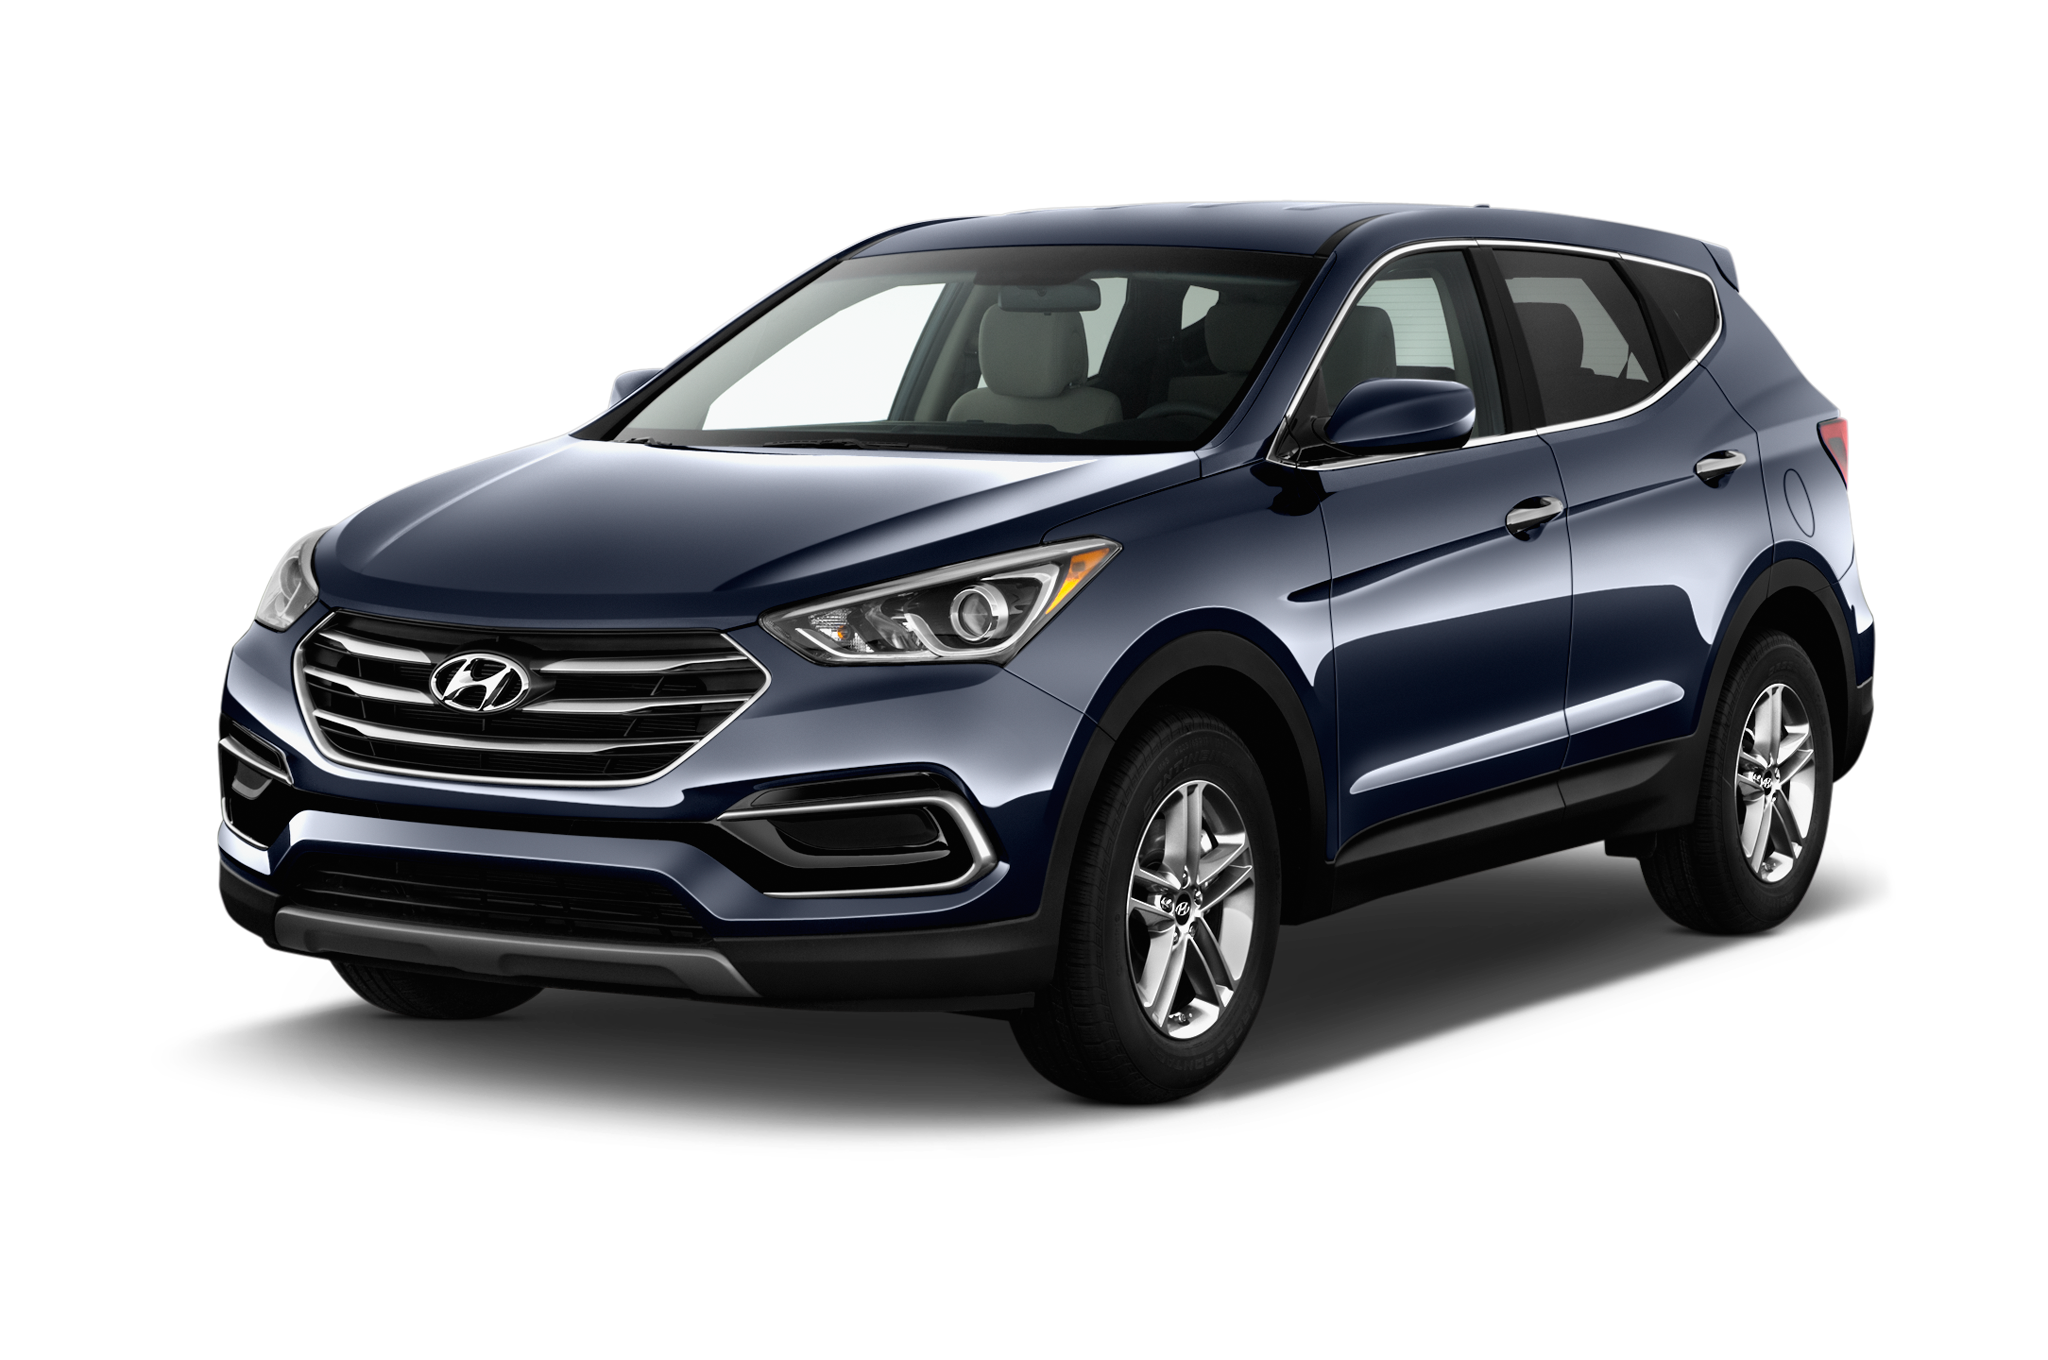 2017 hyundai santa fe xl pricing msn autos. Black Bedroom Furniture Sets. Home Design Ideas